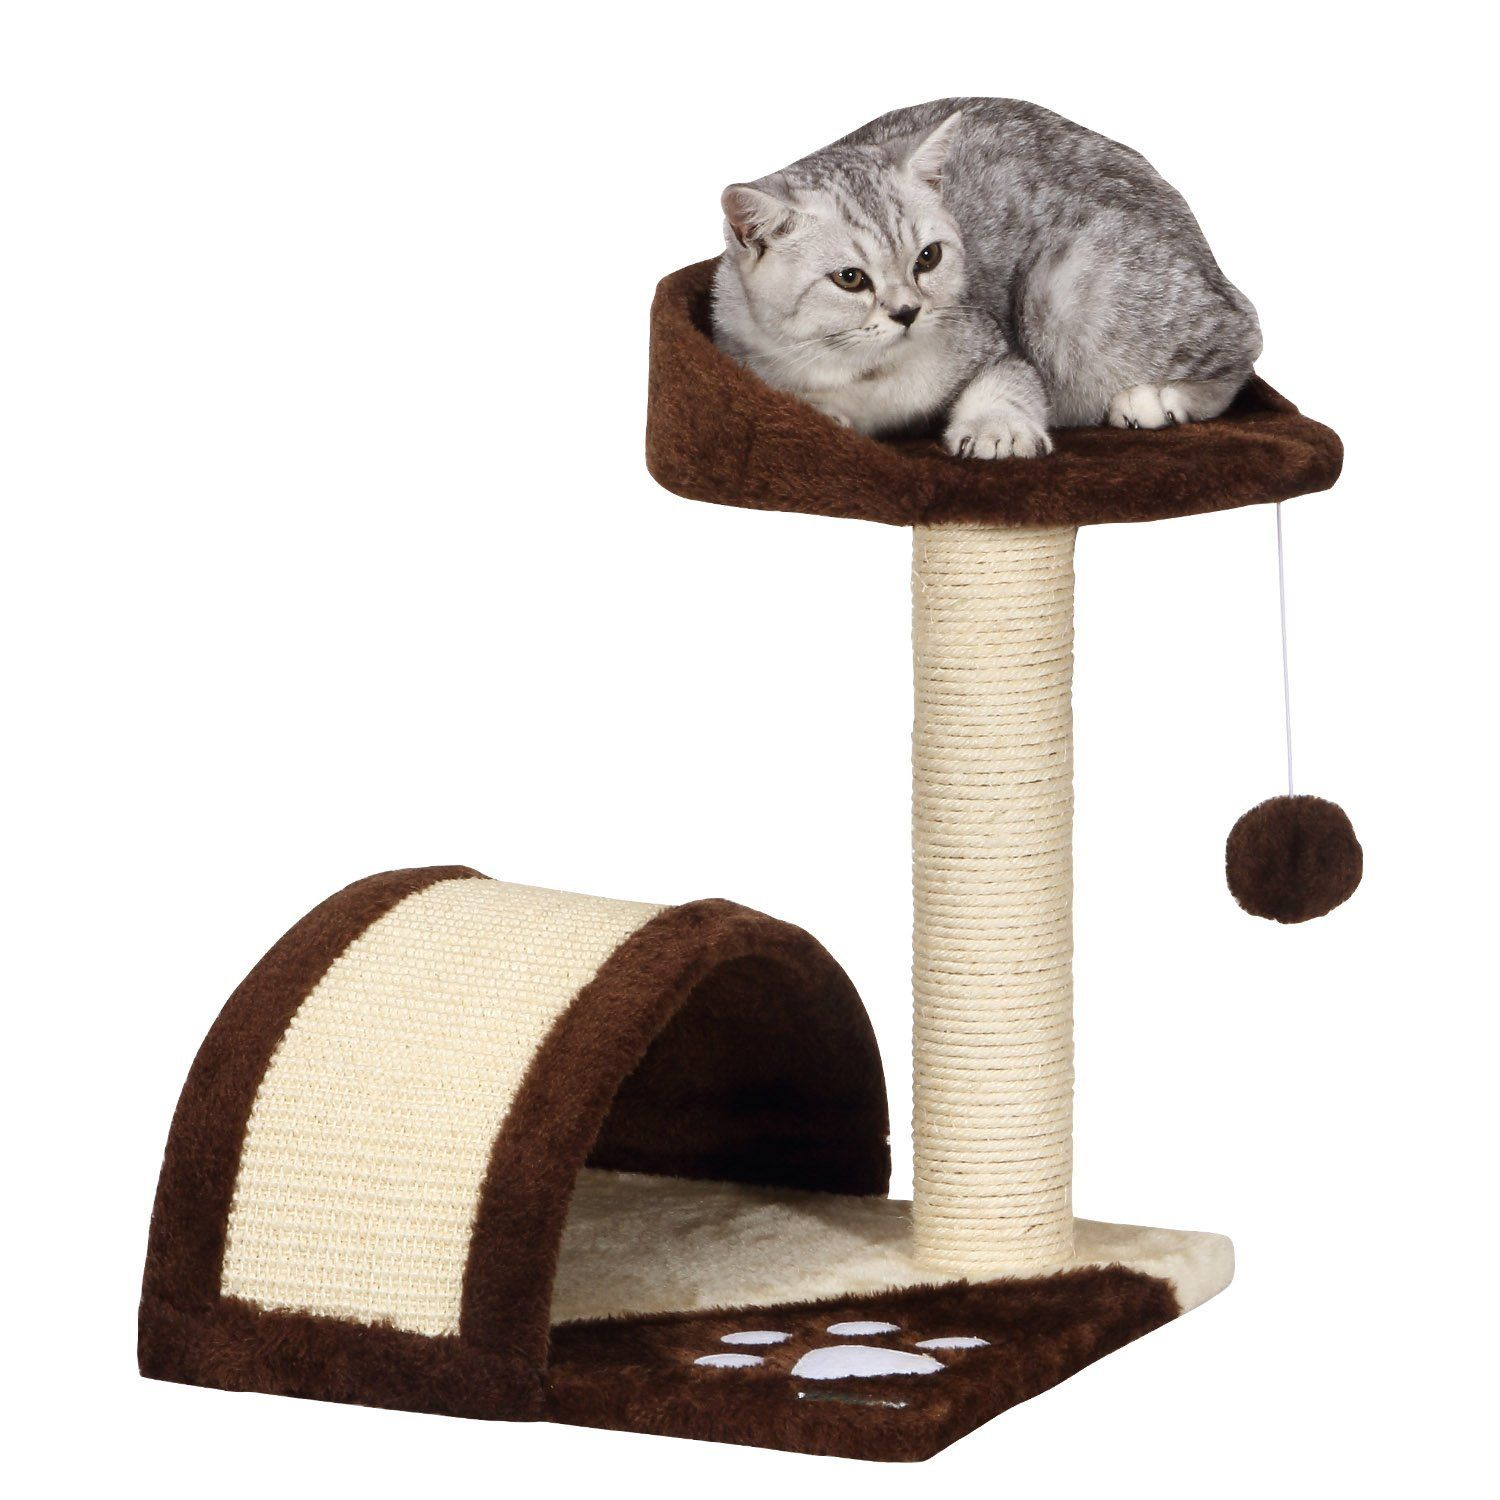 Ollieroo Cat Tree Scratching Post With Integrated Play House Kitten Toy And Bed Click Image For More Details This Is An Af Small Cat Tree Homemade Cat Toys Cat Tree